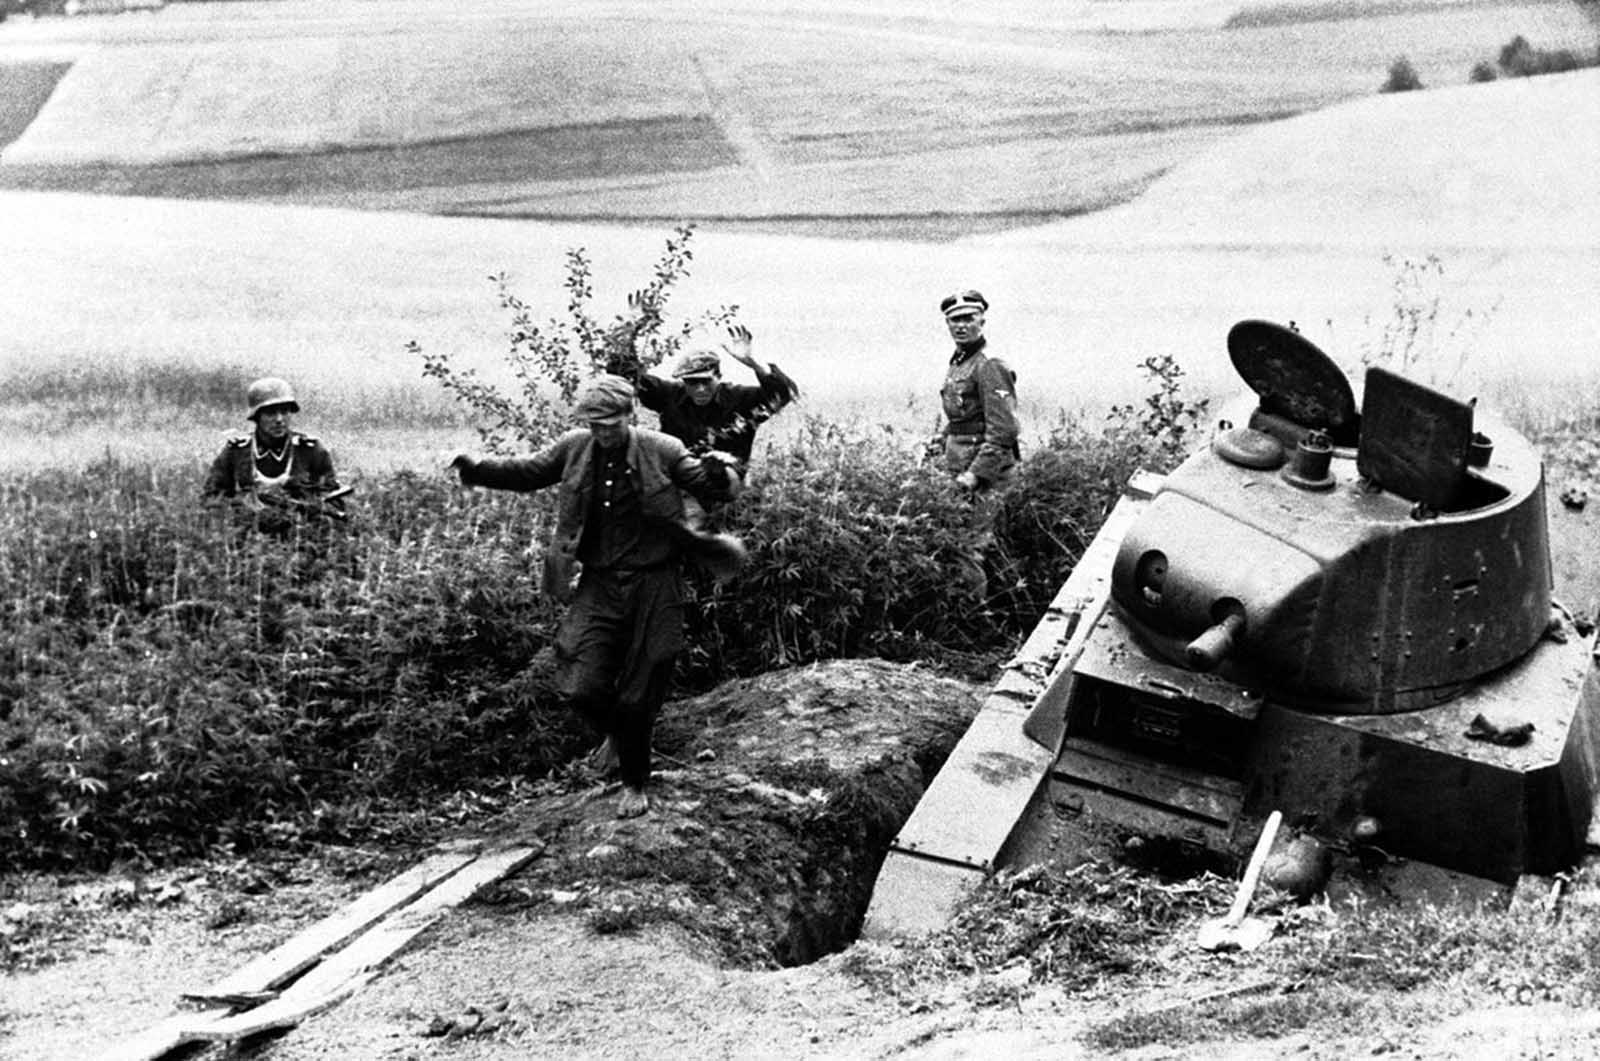 Russian snipers leave their hide-out in a wheat field, somewhere in Russia, on August 27, 1941, watched by German soldiers. In foreground is a disabled soviet tank.